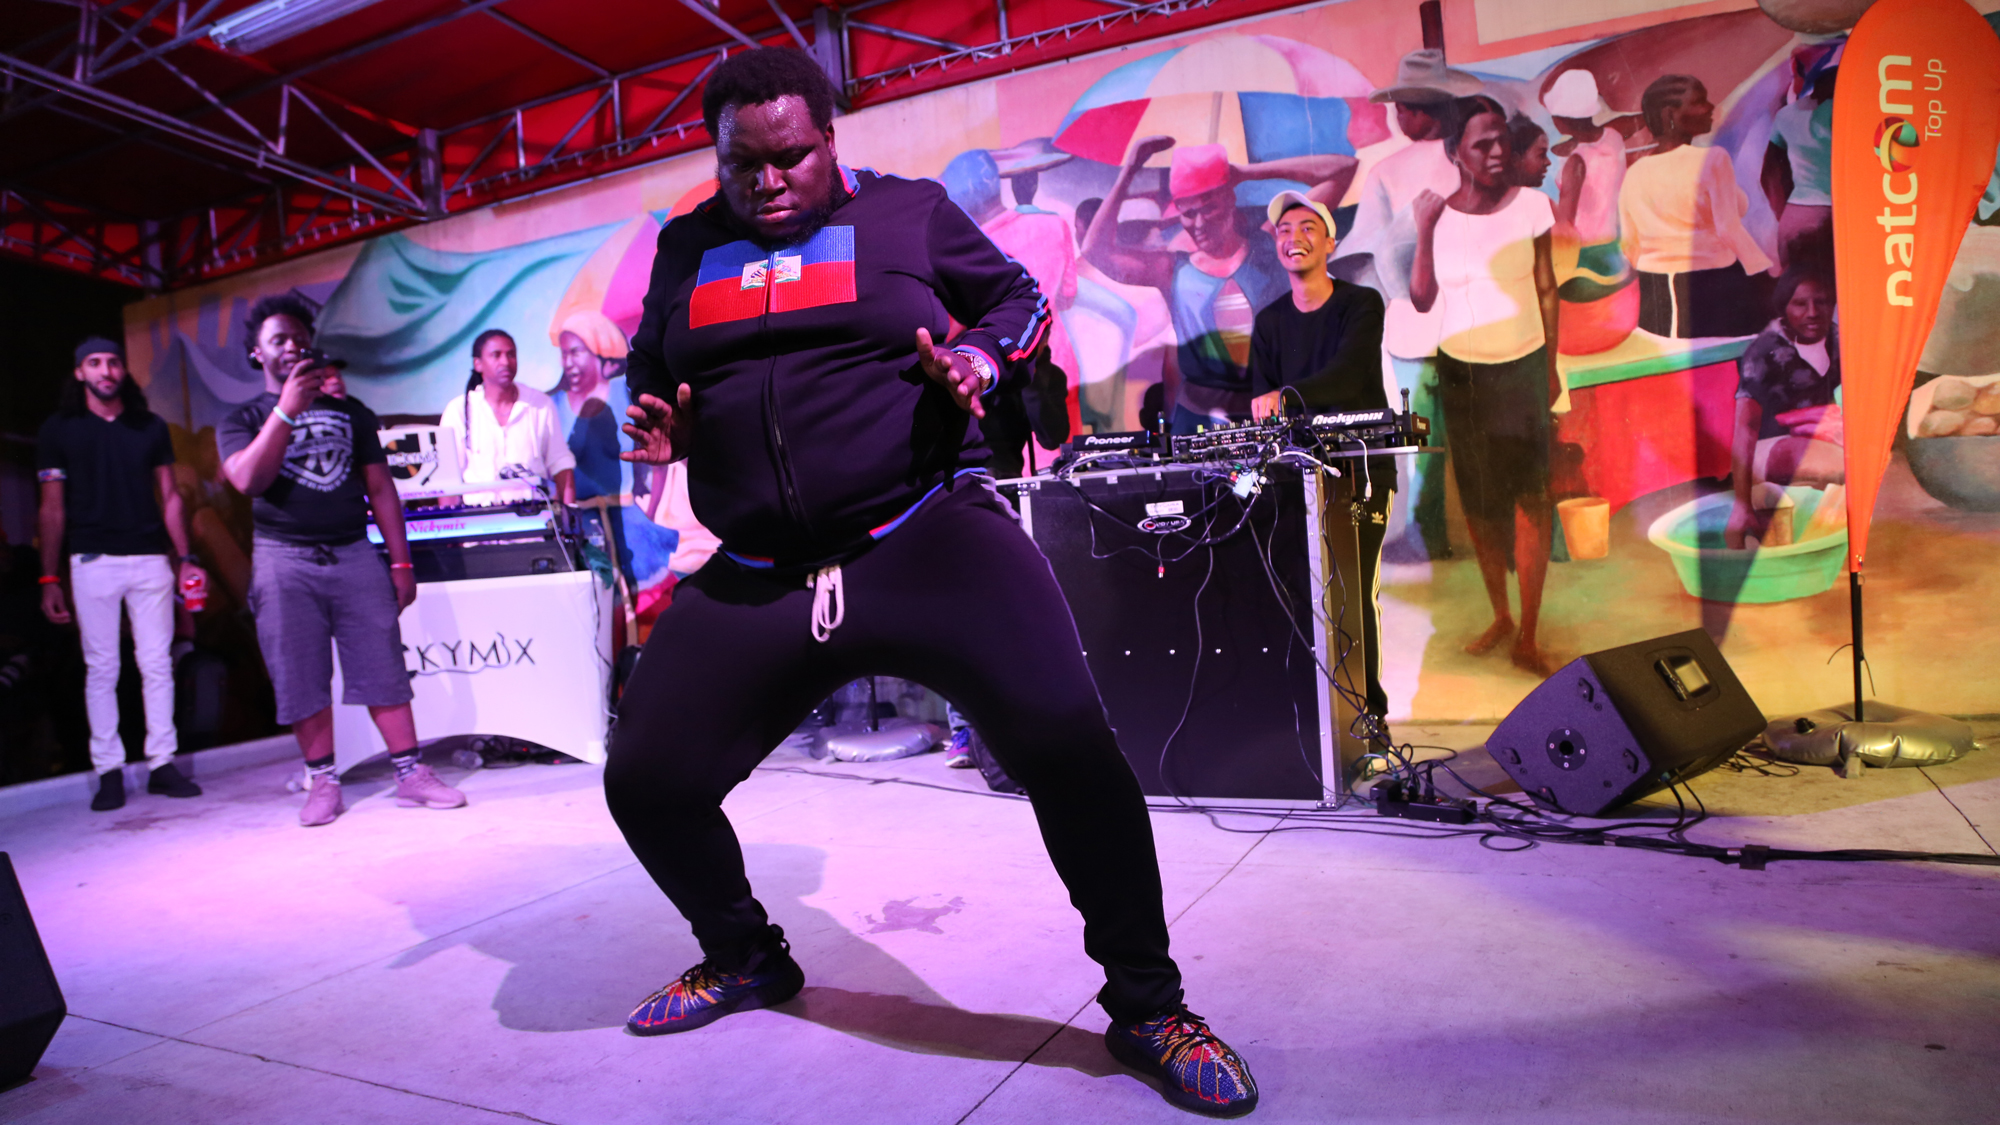 A fan dressed in a sweatshirt with the Haitian flag on it, joins DJ Michael Brun on stage at the Bayo Block Party in Miami, Flordia.